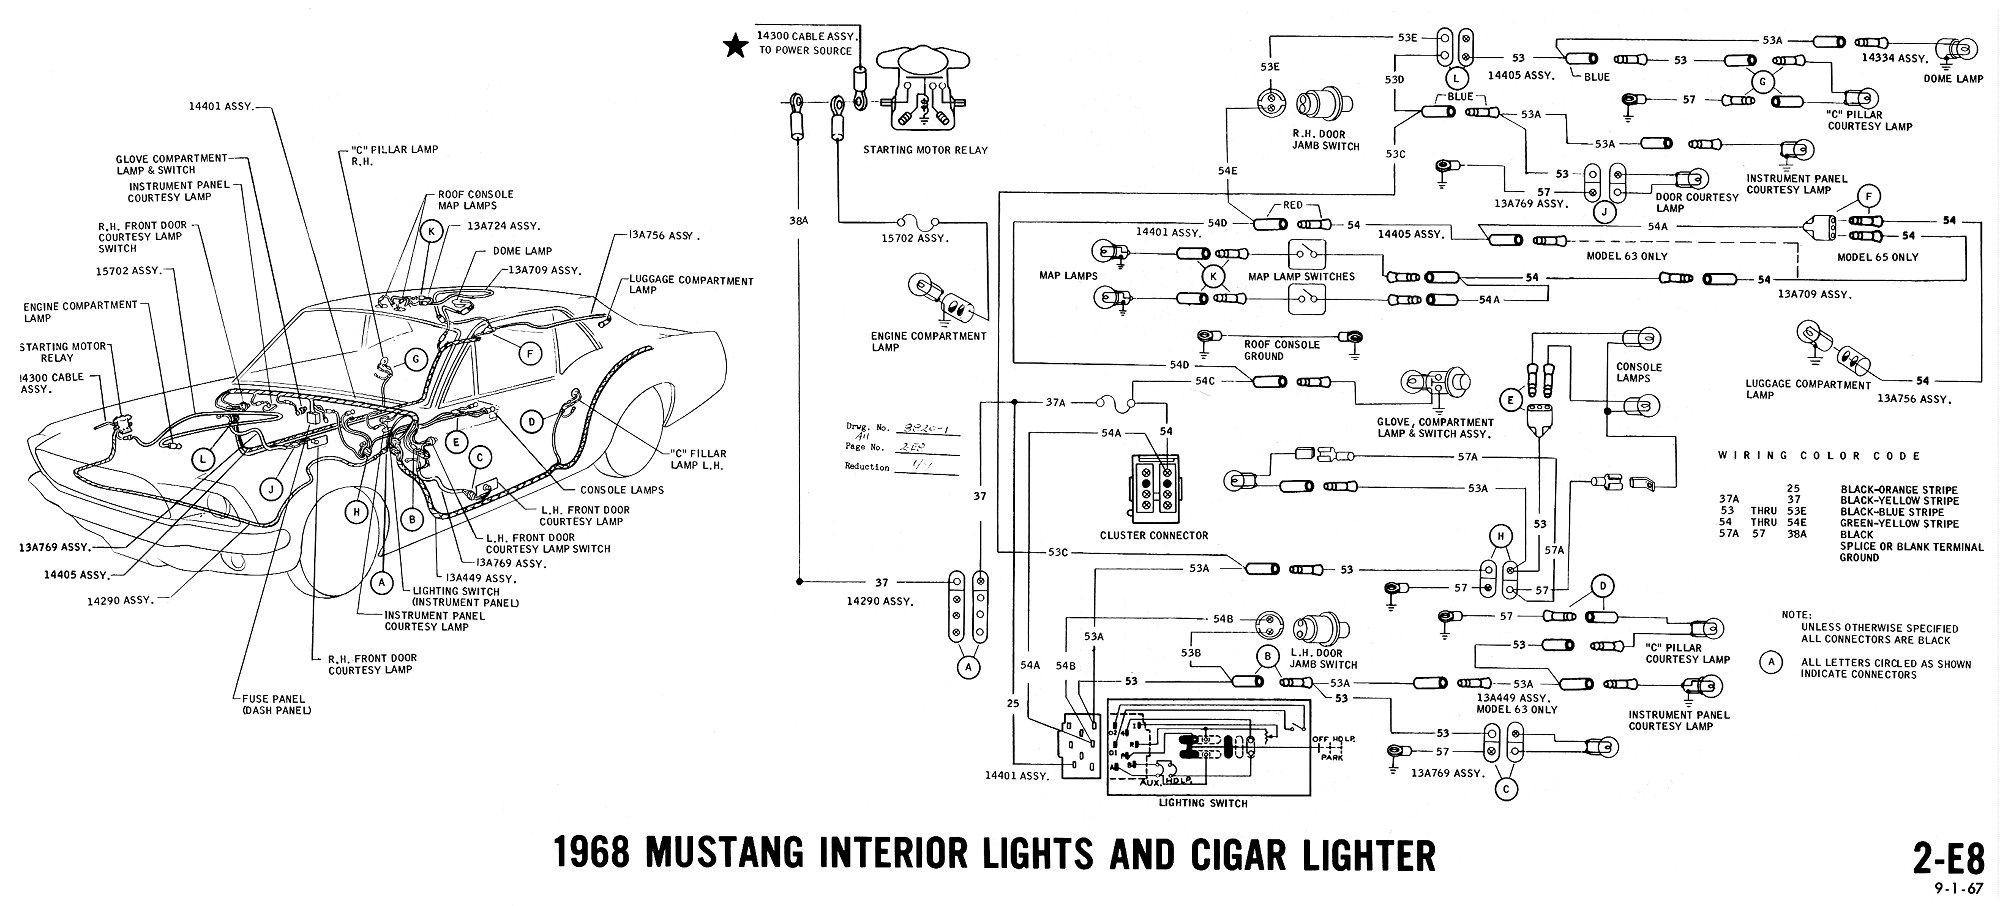 1968 mustang wiring diagrams evolving software rh peterfranza com mustang wiring diagram 1966 mustang wiring diagram 2016